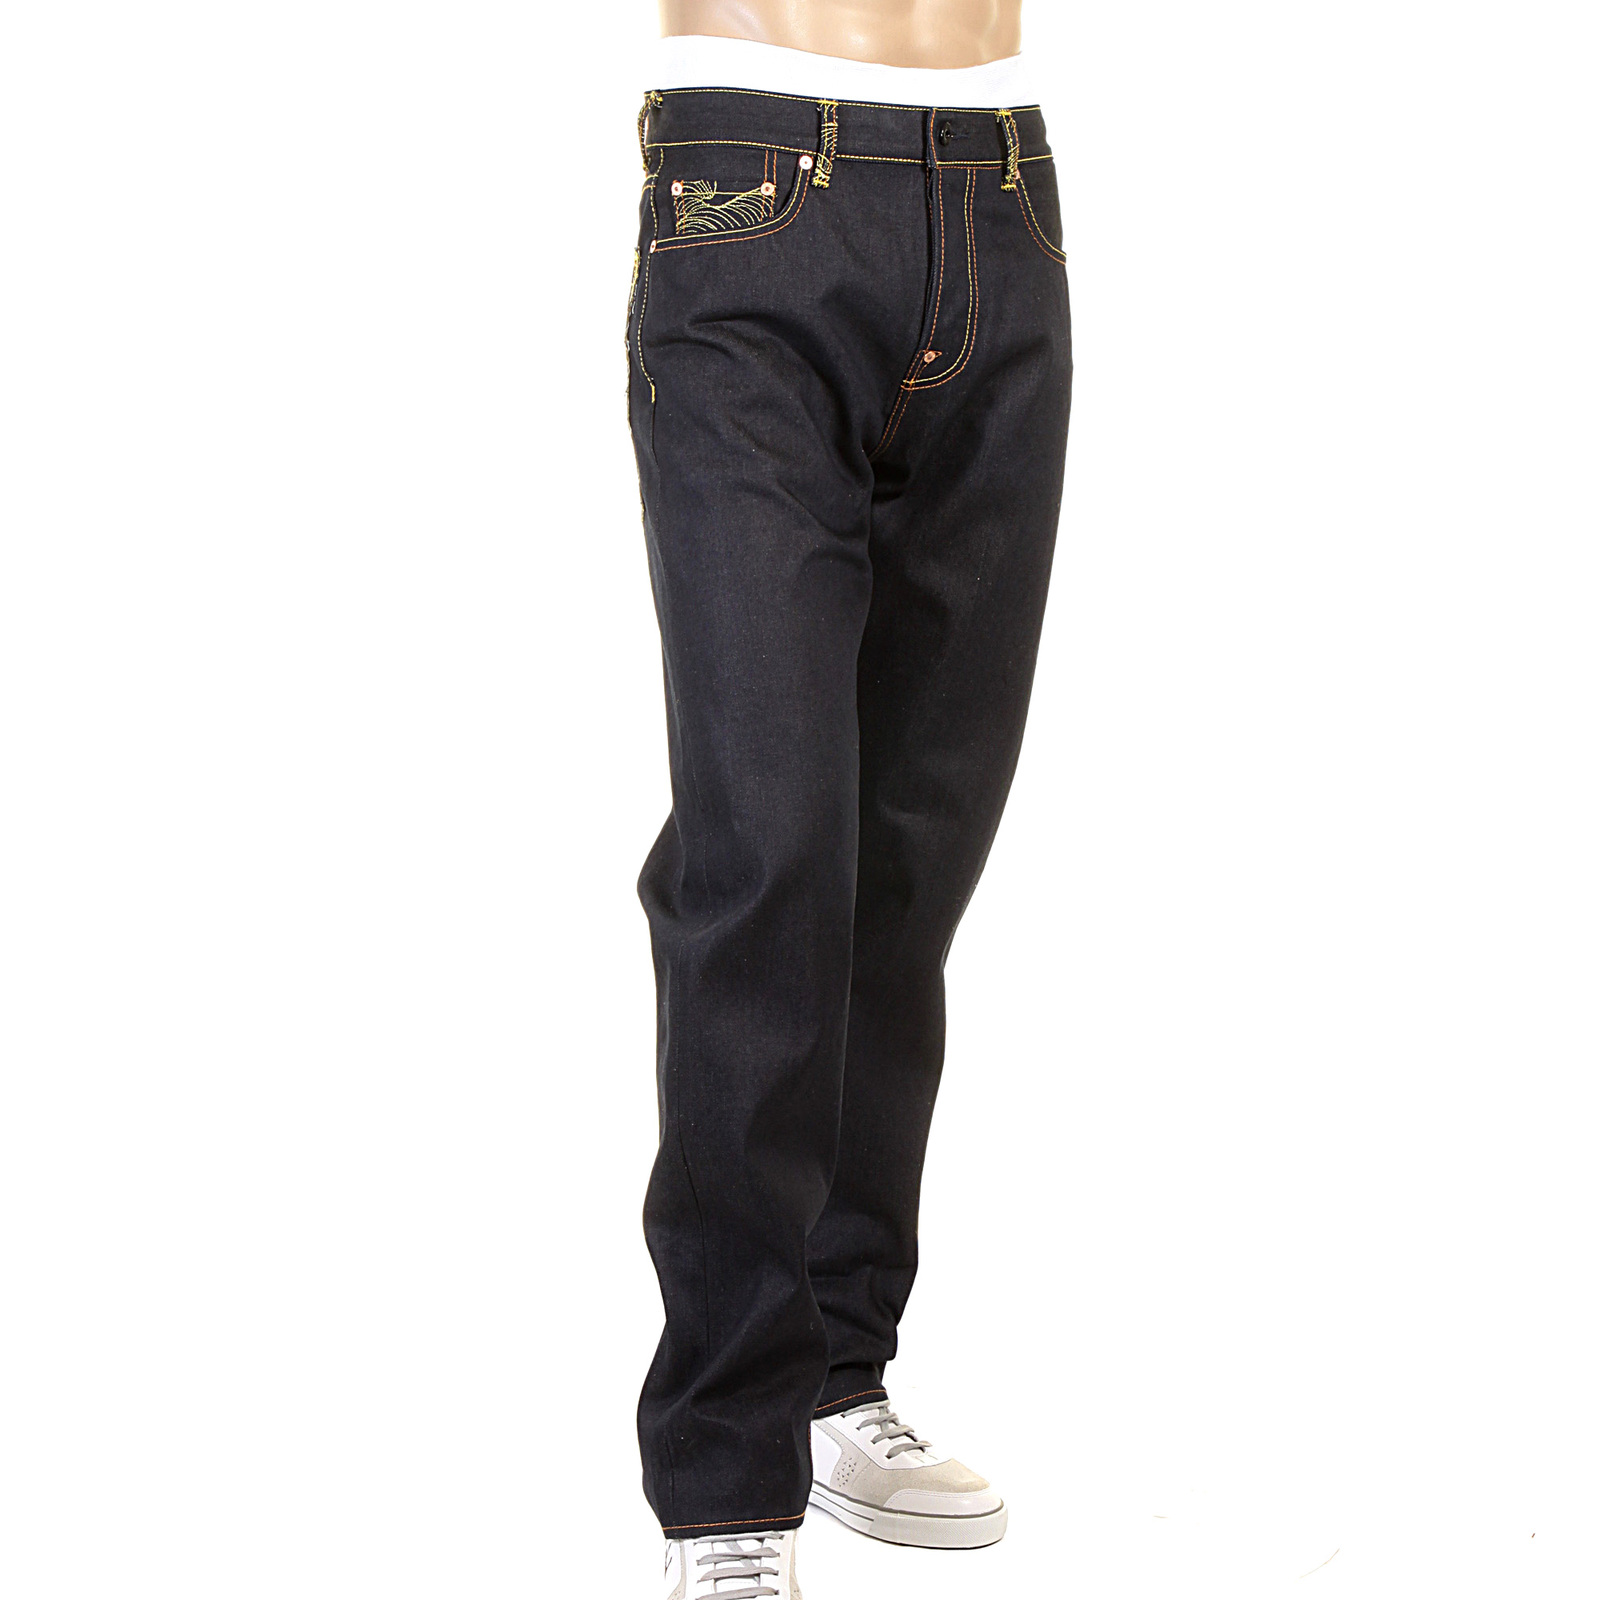 10 of the Best Men's Selvedge Denim Jeans. The Petit Standard is our favourite jean model from A.P.C, stiff Japanese Raw Selvedge that ages perfectly. Petit Standards have a straight but fitted leg, creating a close silhouette without being skinny. The essential pair of everyday Raw Selvedge.